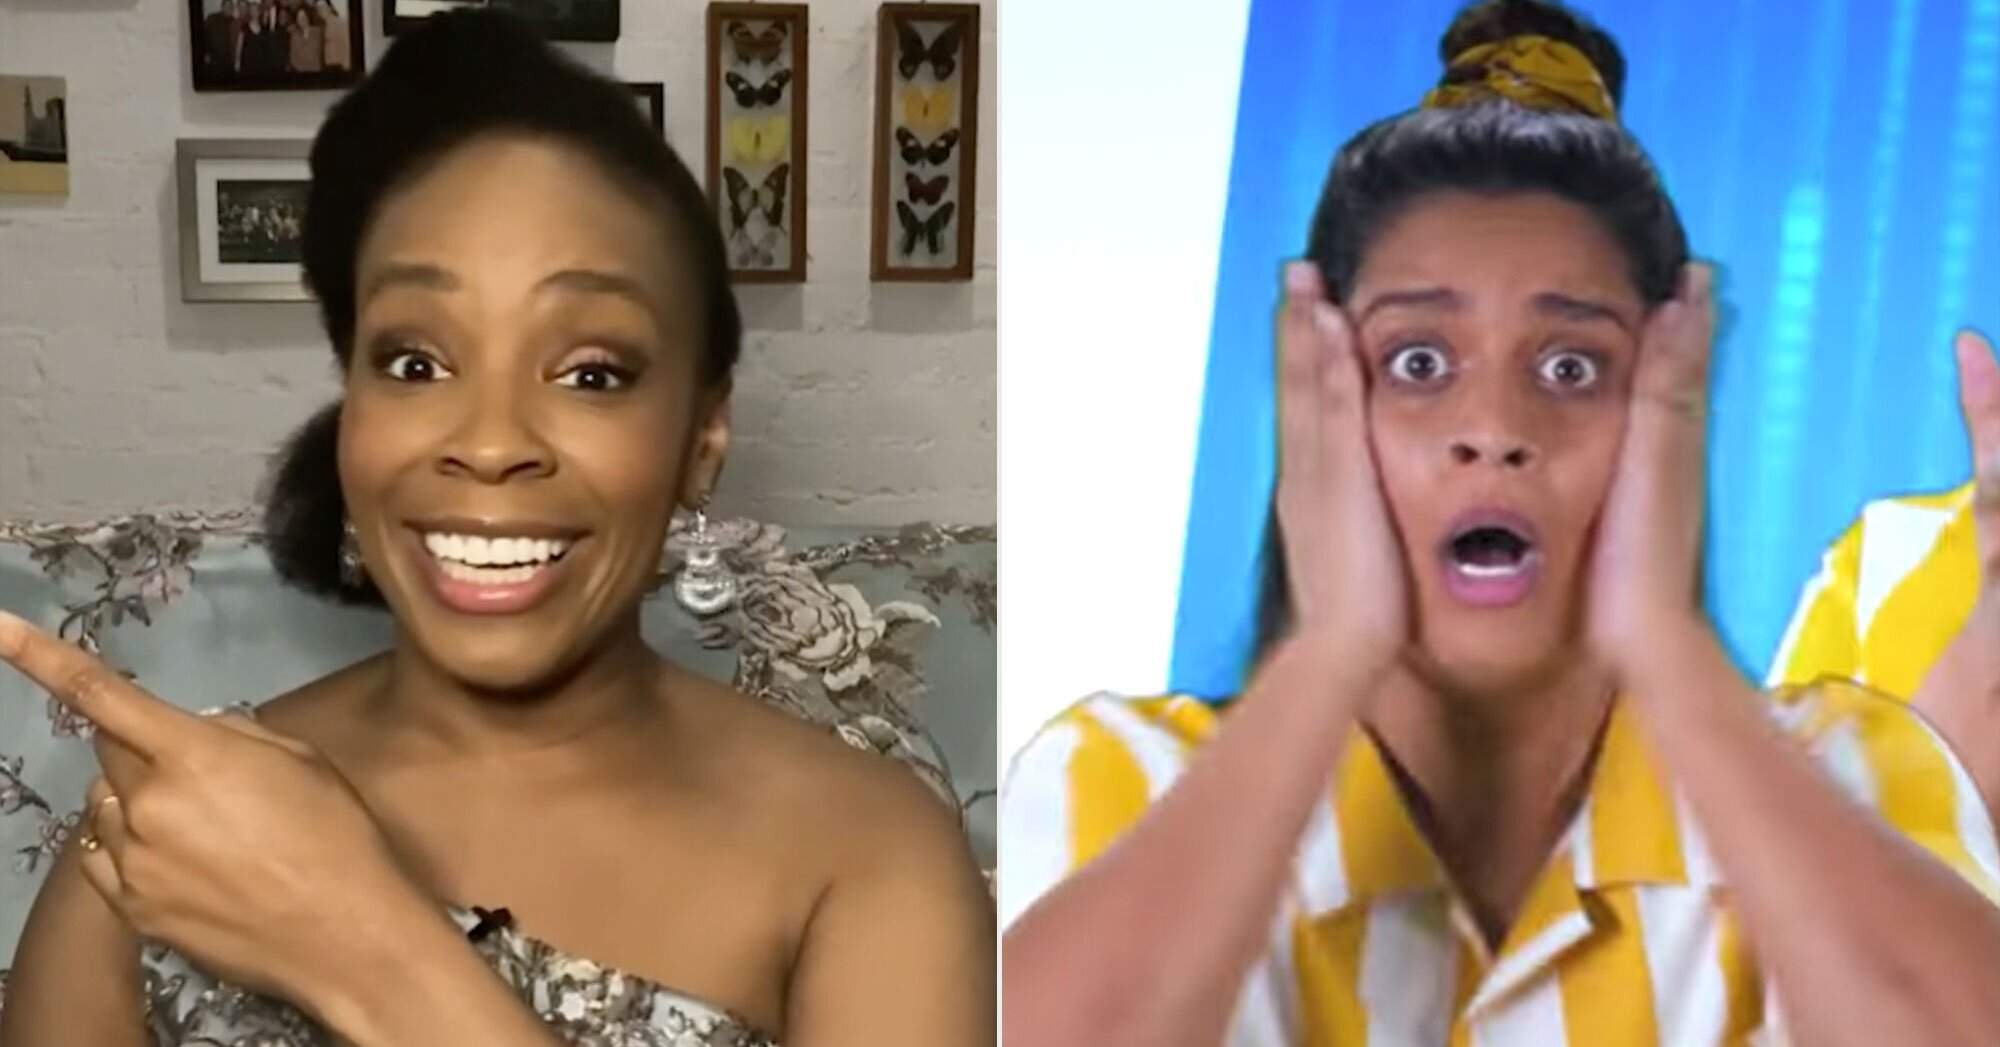 Best of late-night: Amber Ruffin wears ball gown at home, Lilly Singh mocks internet pitfalls